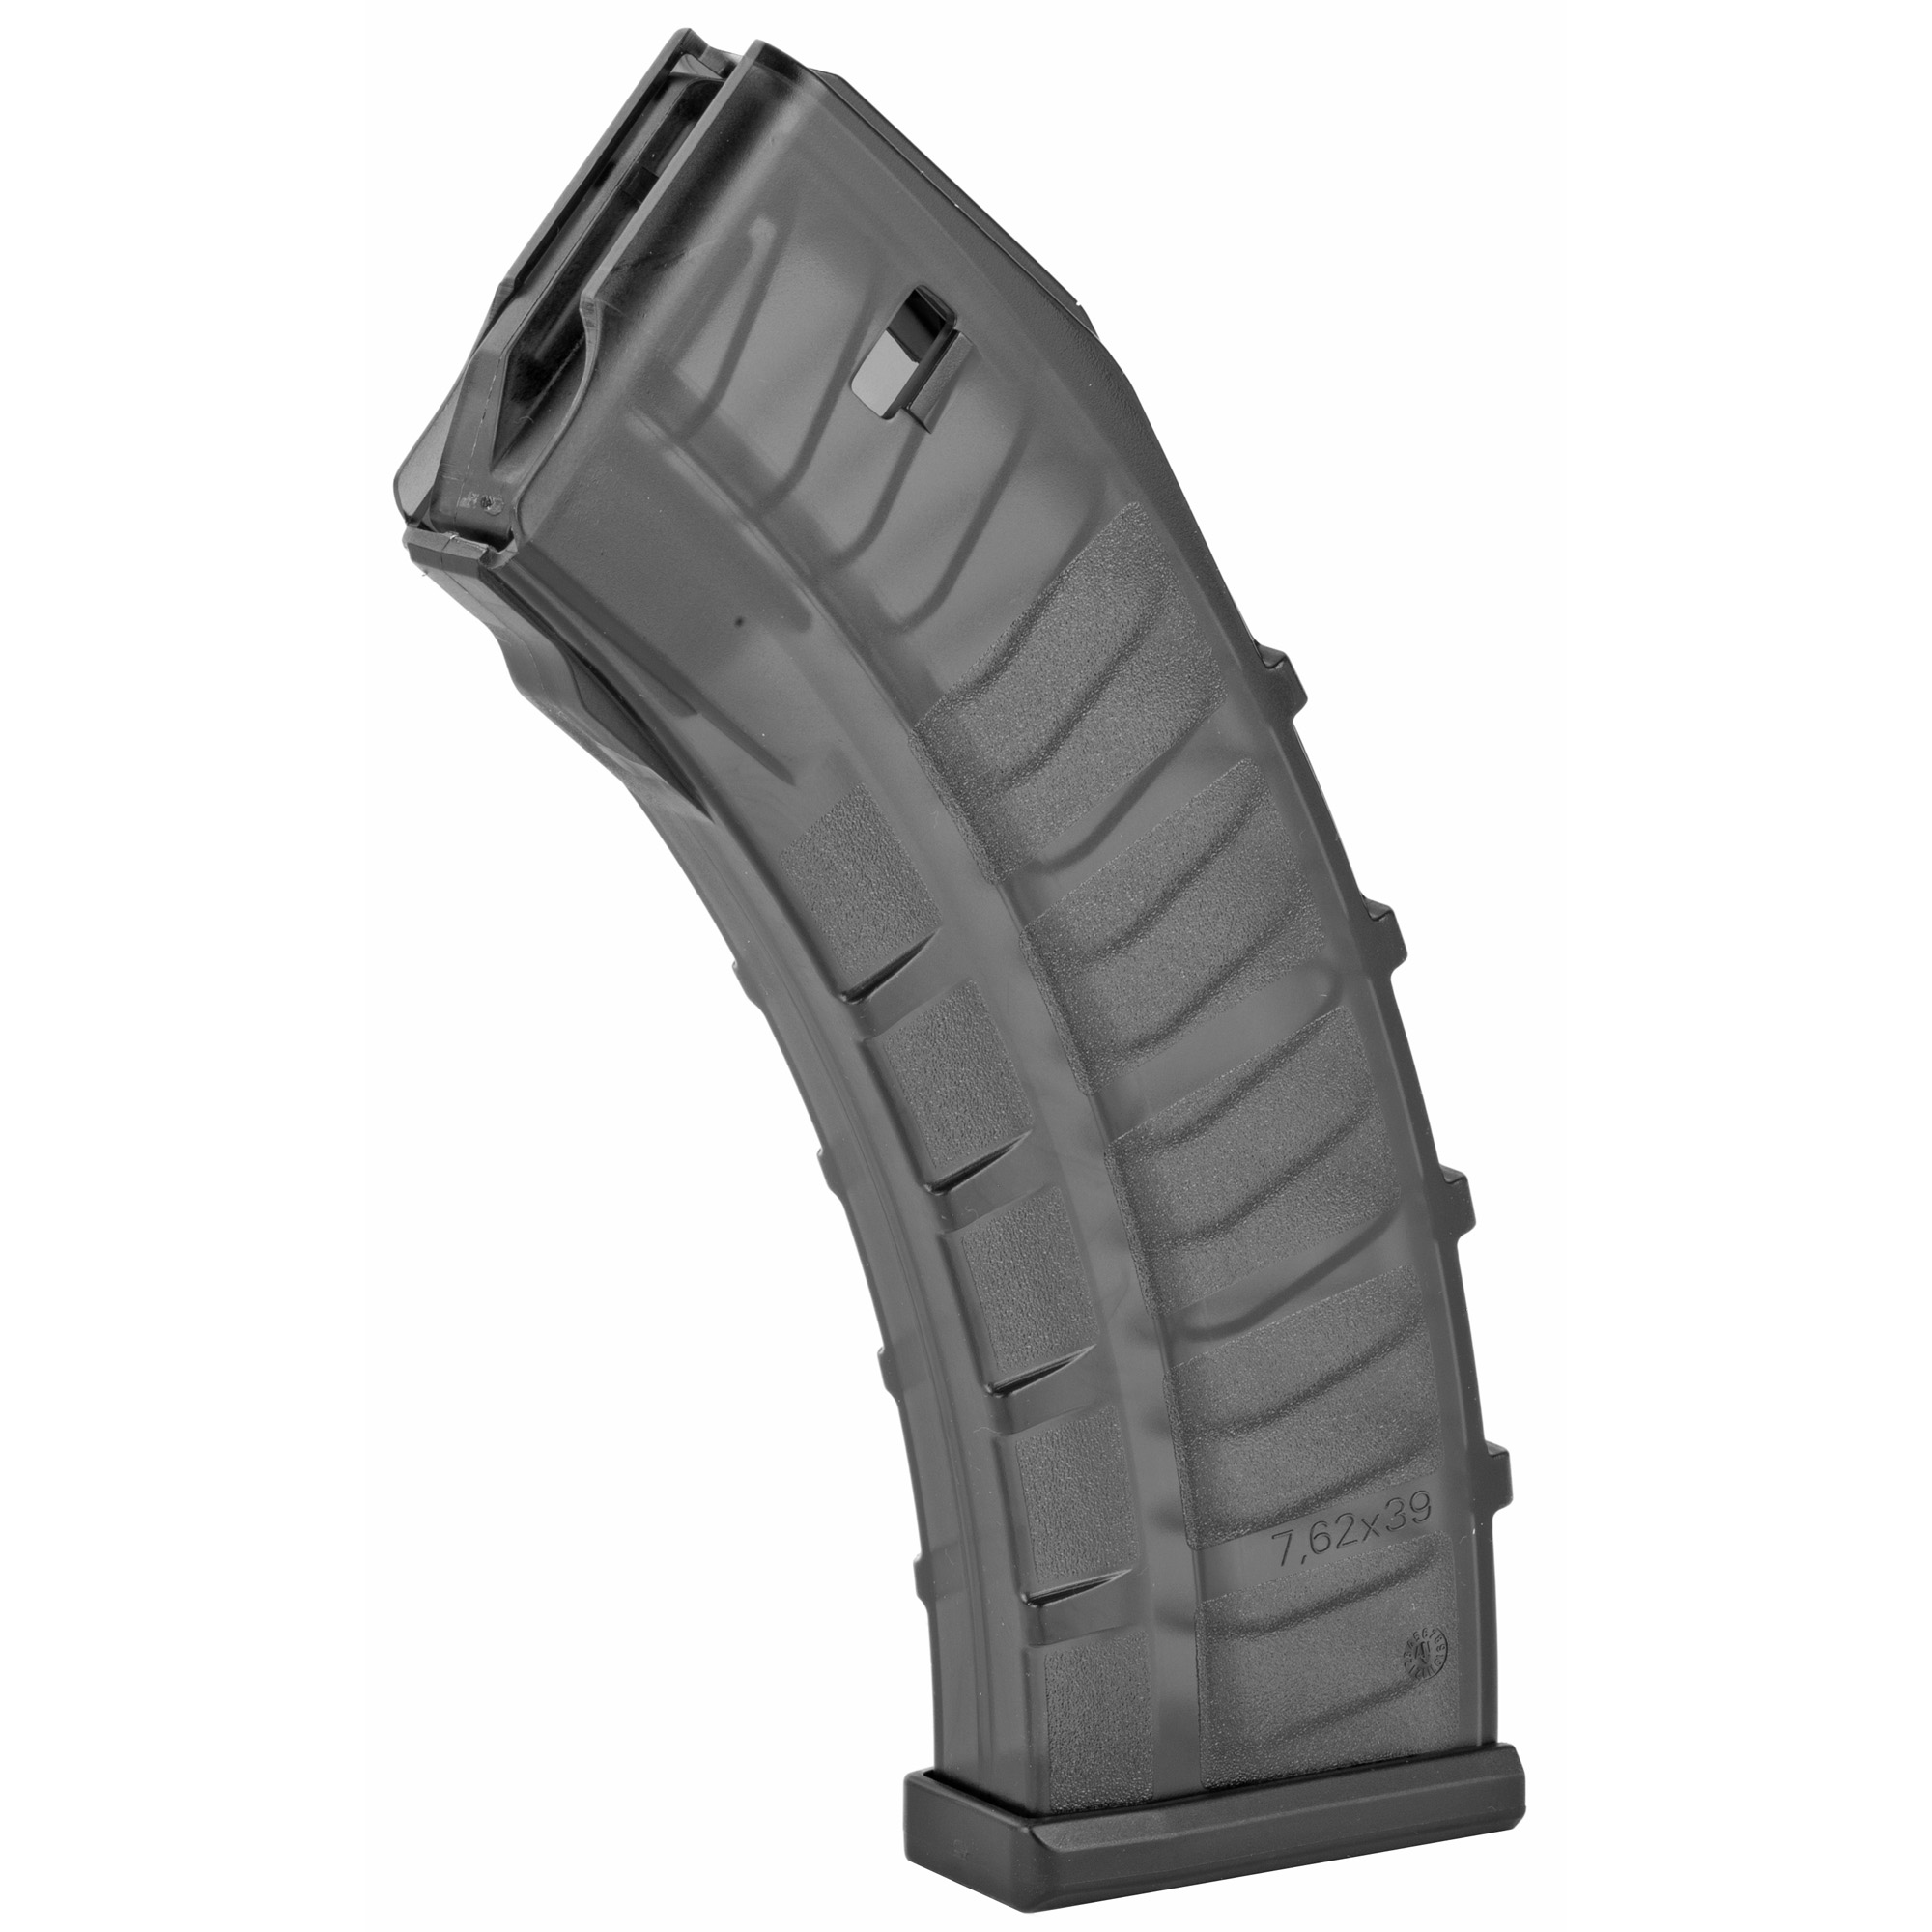 This CZ factory OEM magazine features translucent polymer construction and is designed for reliable operation in the CZ BREN 2.